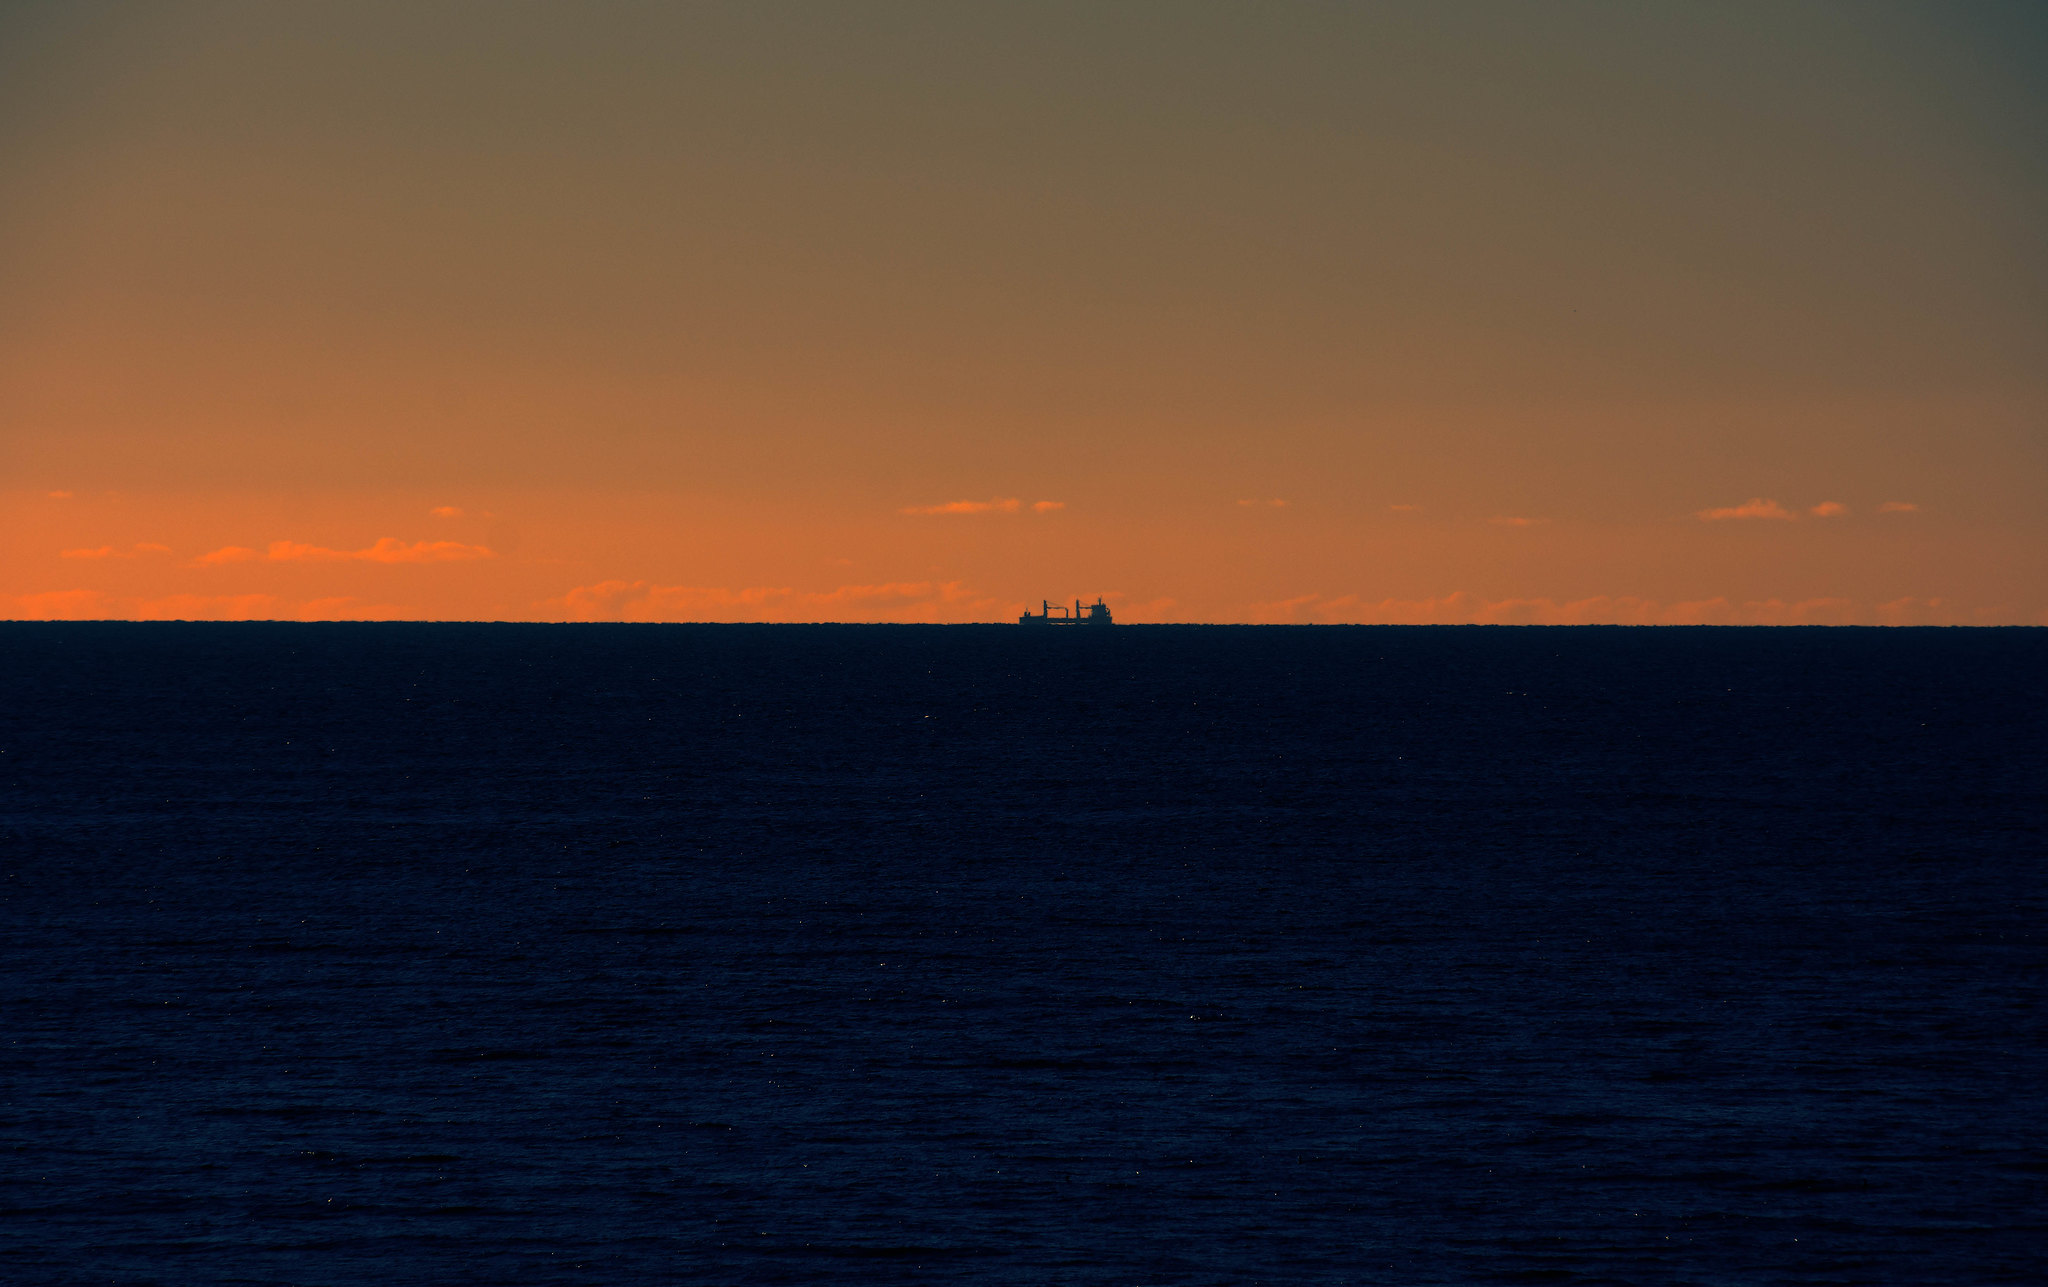 20170115-Sailing into the sunset.jpg